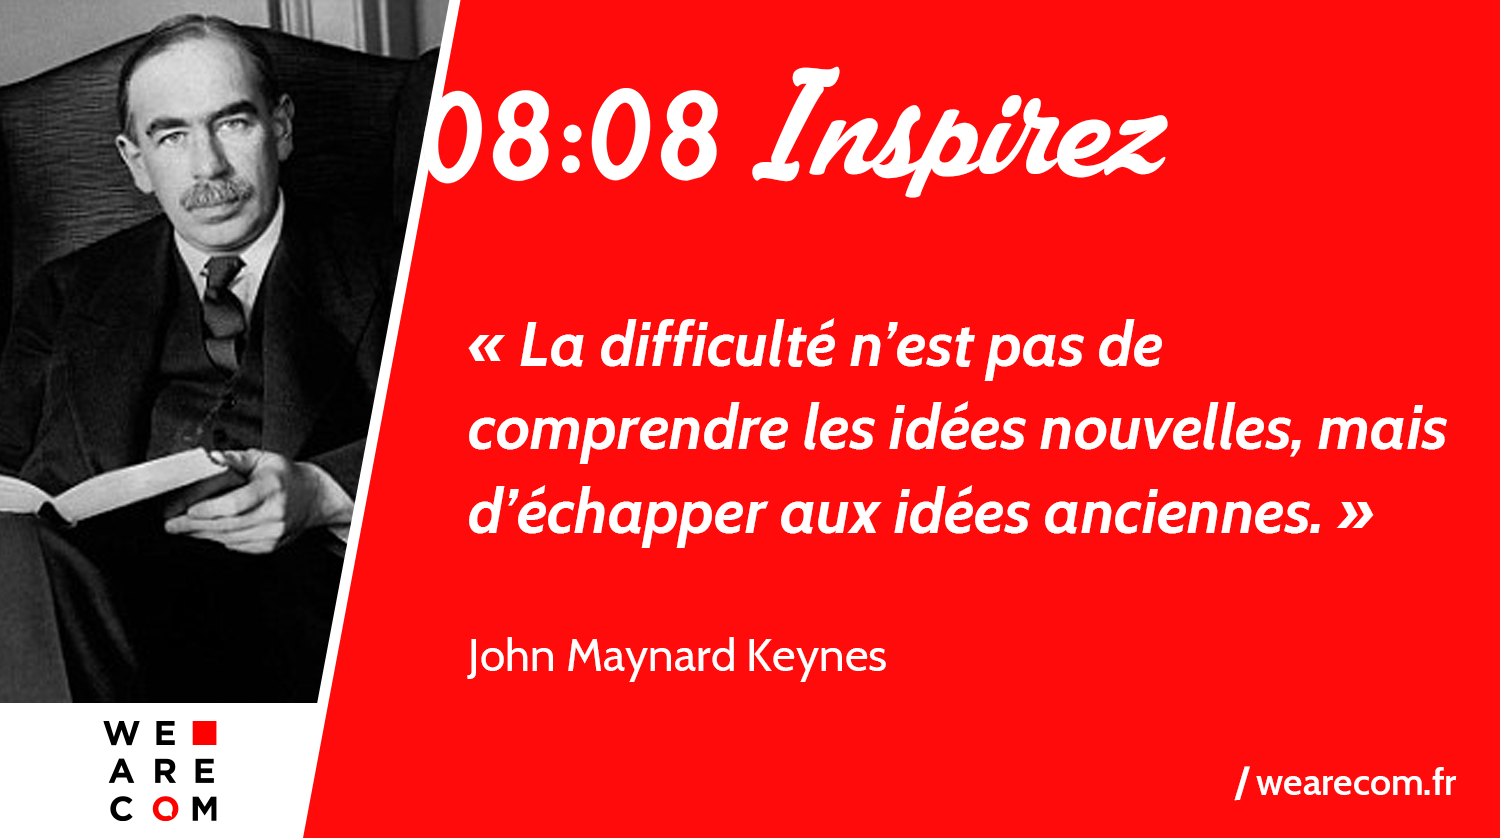 Keynes_Innovation_communication_citation_WeAreCOM